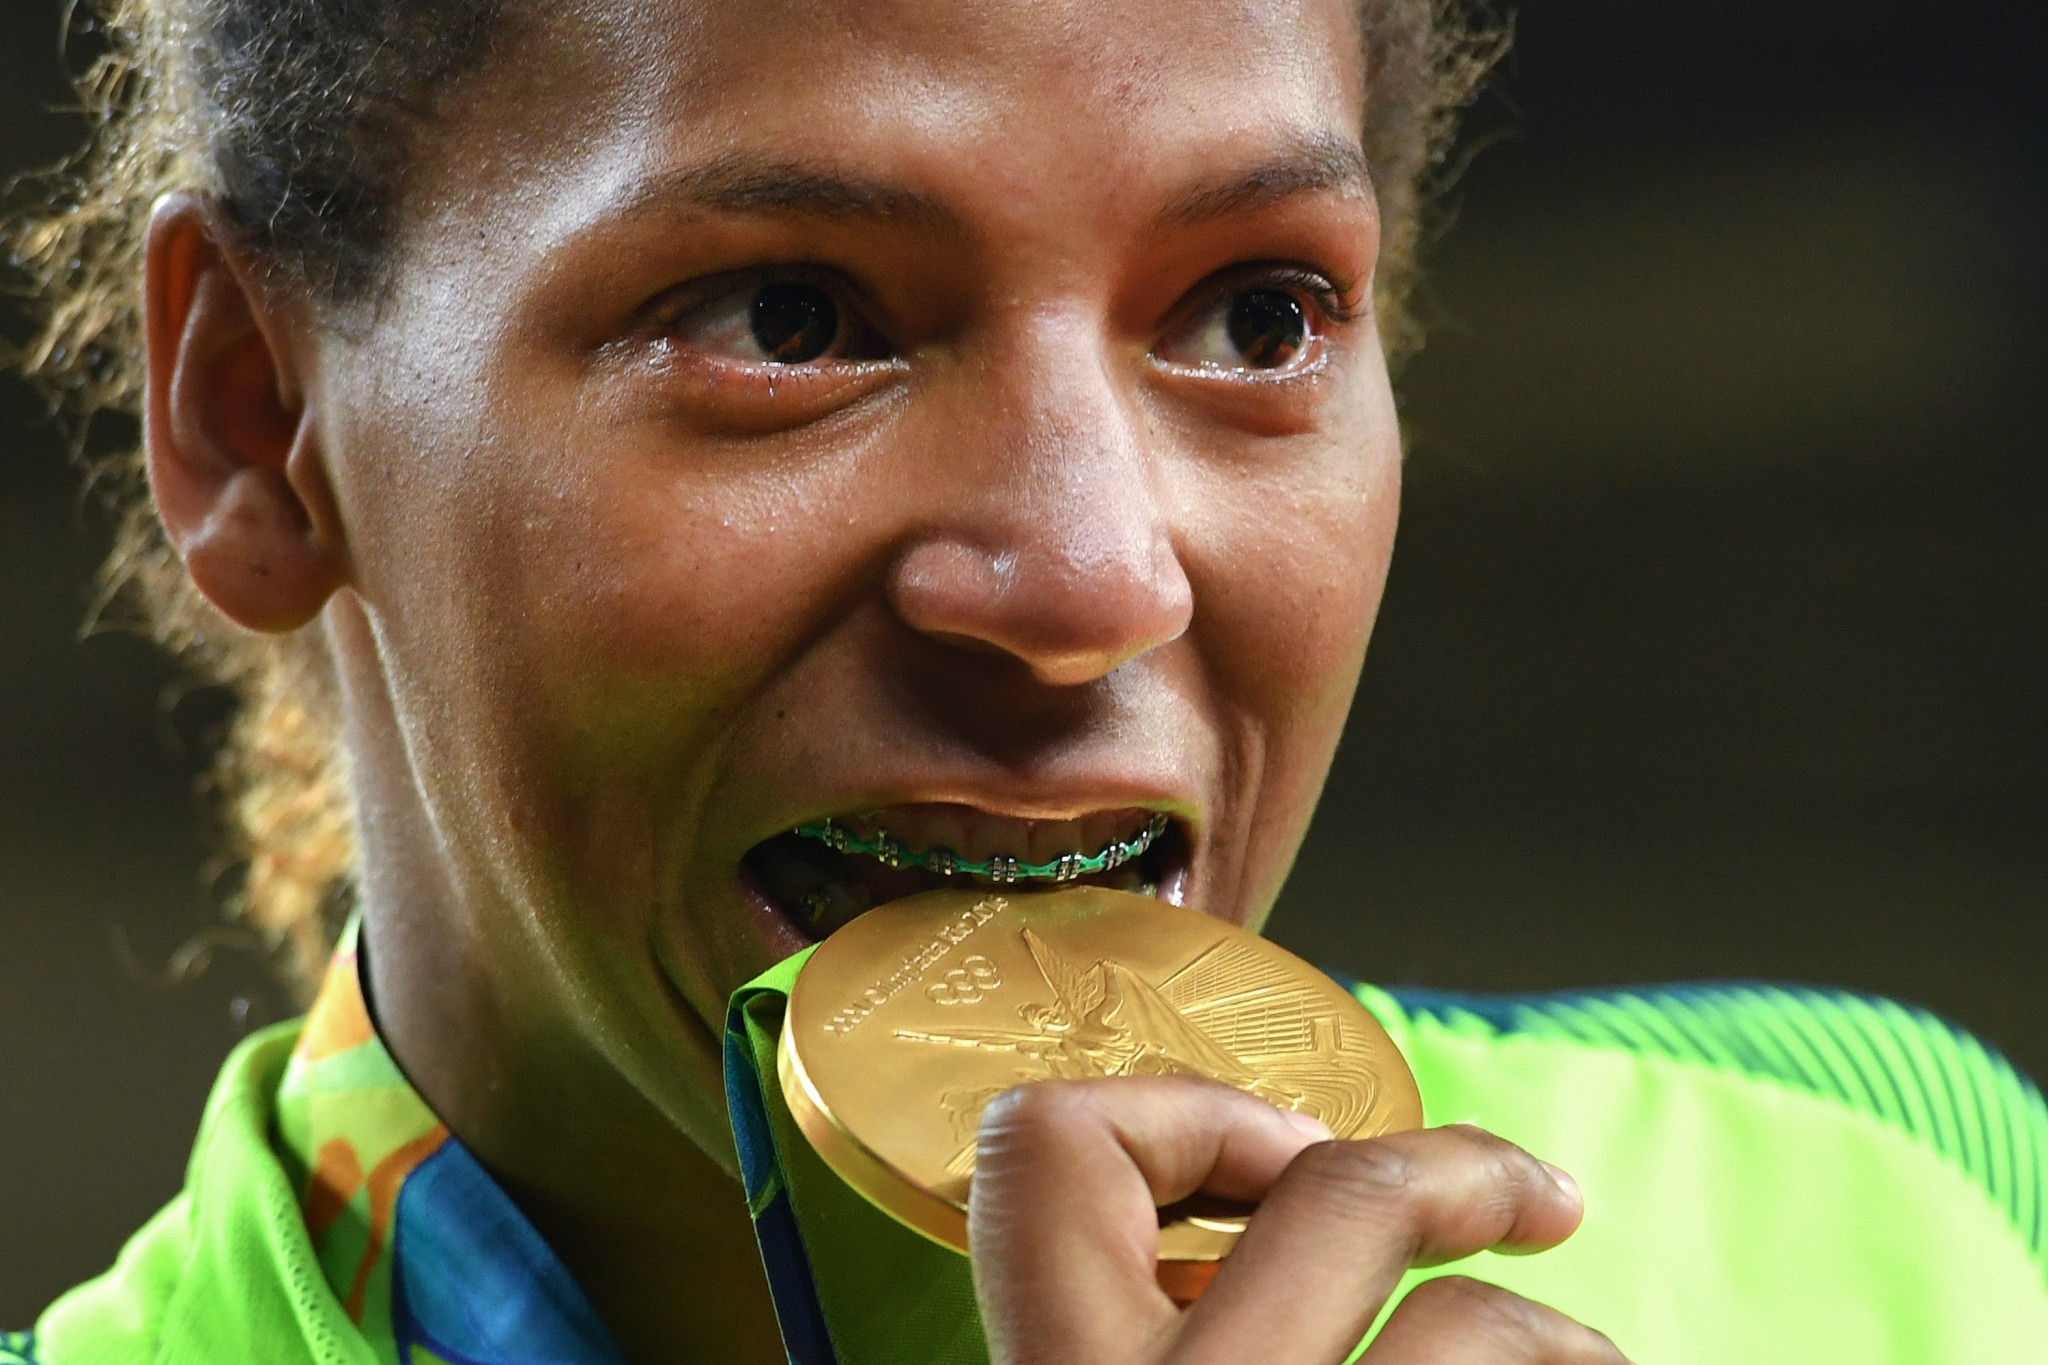 Rafaela Lopes Silva faces missing the Tokyo 2020 Olympics after winning gold at Rio 2016  ©Getty Images